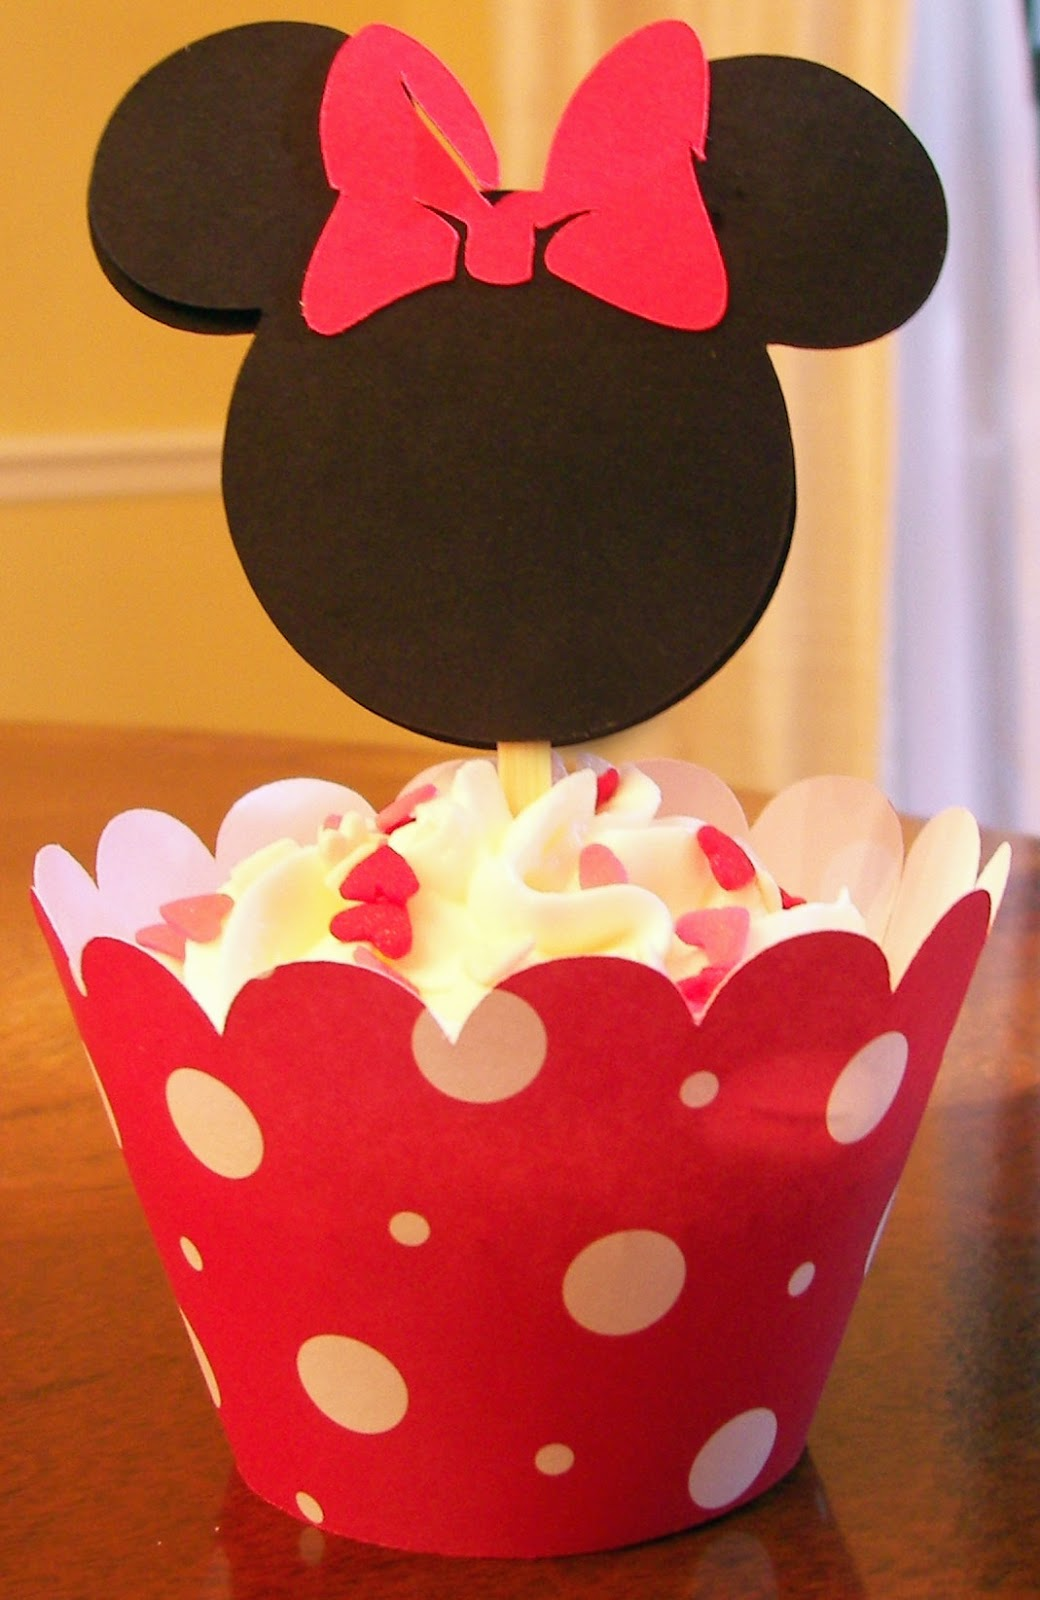 minnie mouse cake template free - musings of a crafty mom minnie mouse cake